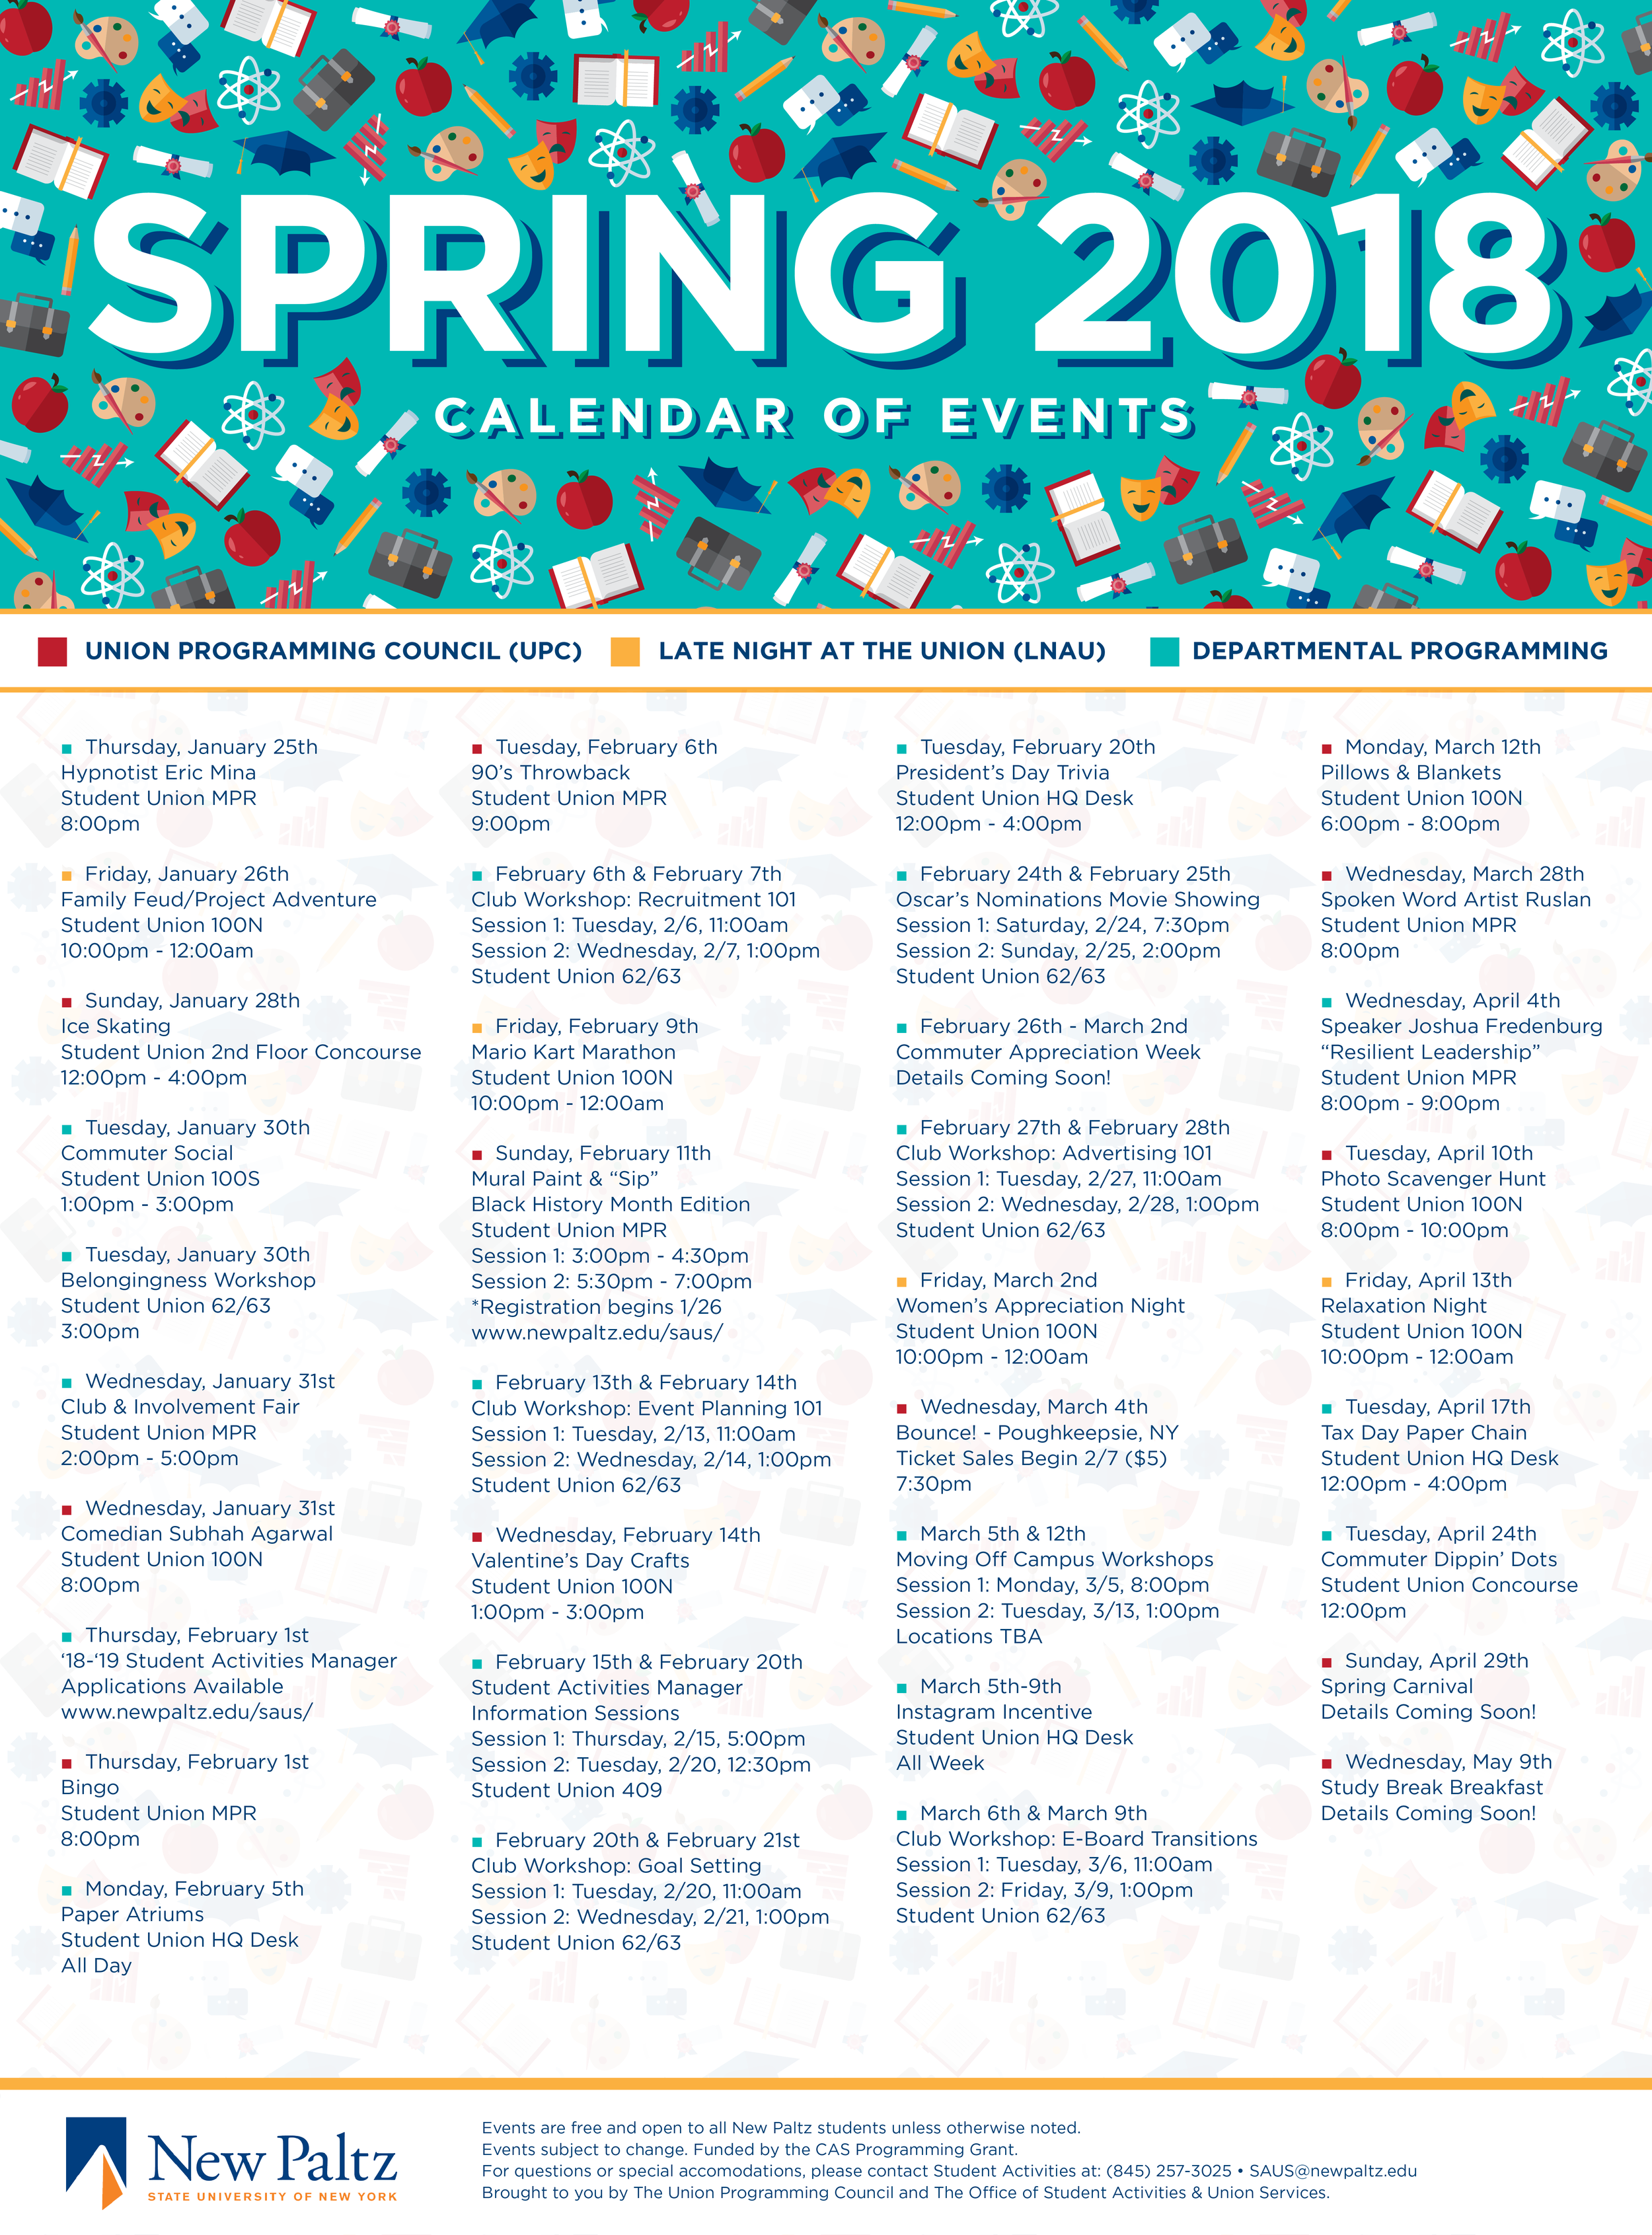 SUNY New paltz spring 2018 calendar of events - This is the official Calendar of Events for the Student Union Building at SUNY New Paltz. There are two icons that represent each school within the college; Liberal Arts, Fine & Performing Arts, Graduate, Education, Business, and Sciences & Engineering. These calendars were posted throughout the entire campus on billboards both outside and inside buildings. They are 17in x 23in.Each icon I illustrated and meticulously placed one by one to form the pattern in the banner on the top of the calendar.